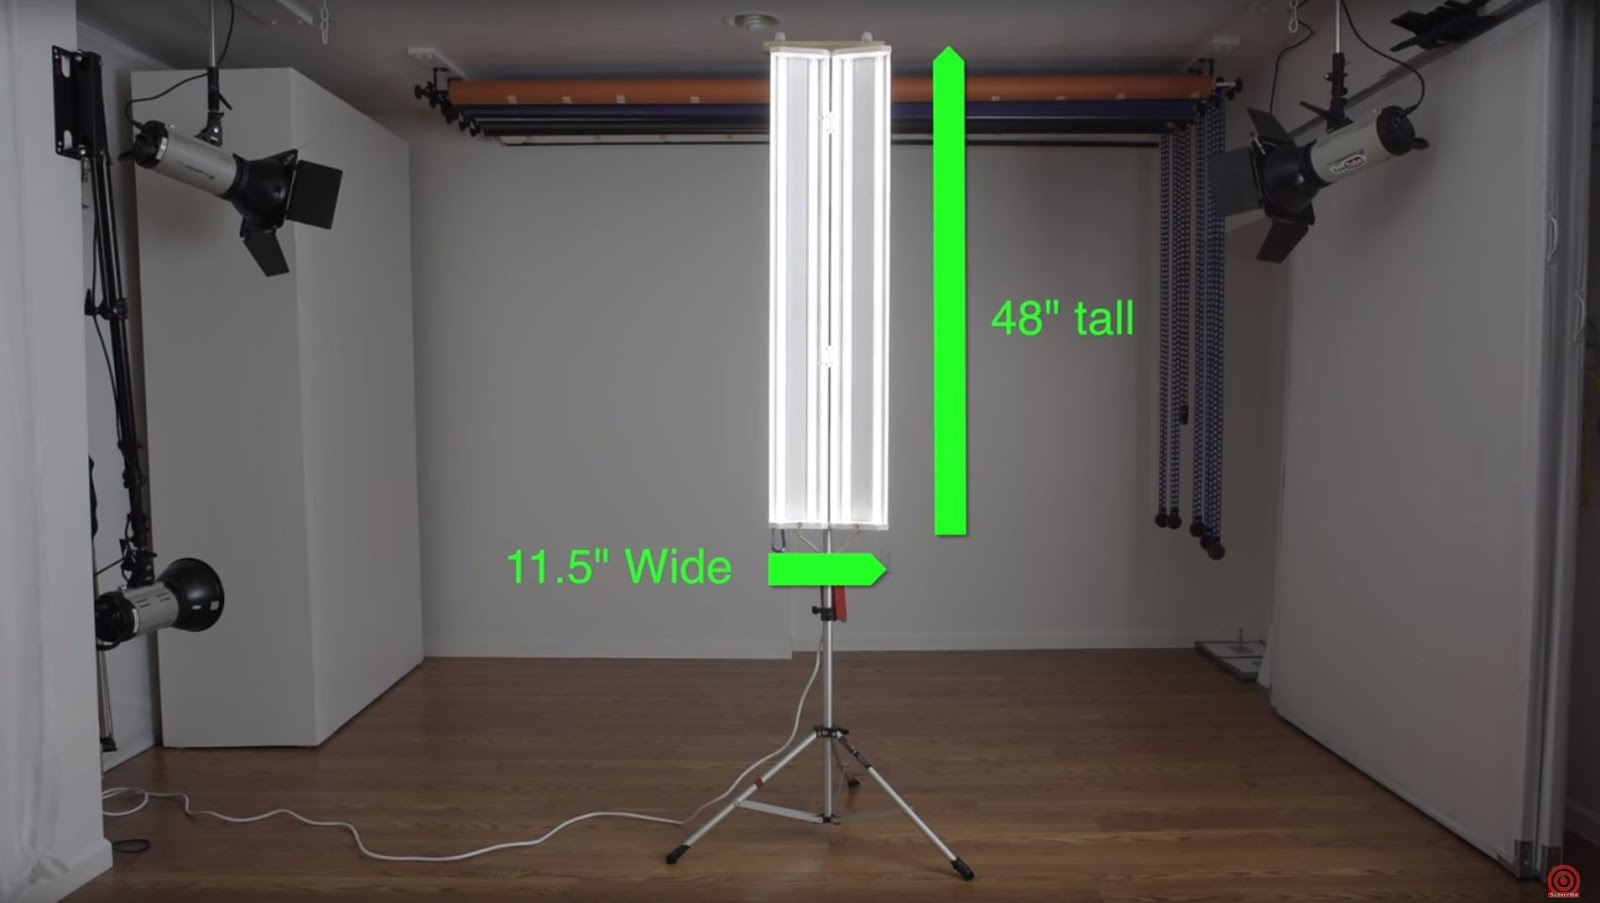 DIY Photography LED Studio Lights for Portraits